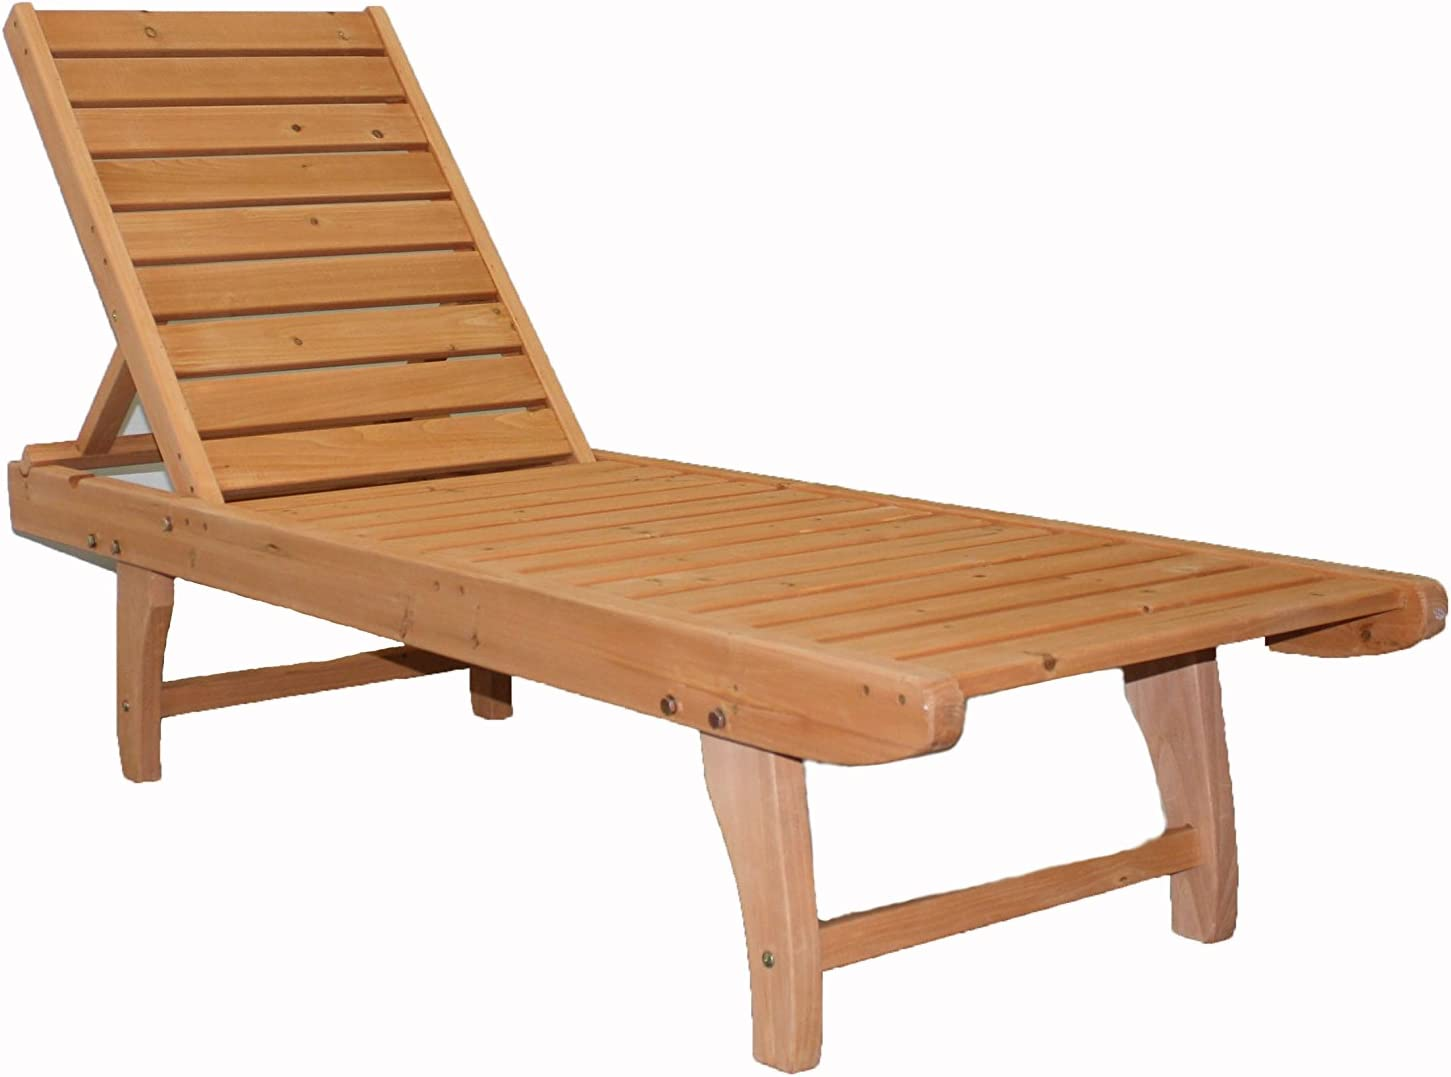 JinJiu Outdoor Wooden Chaise Lounge : Garden & Outdoor